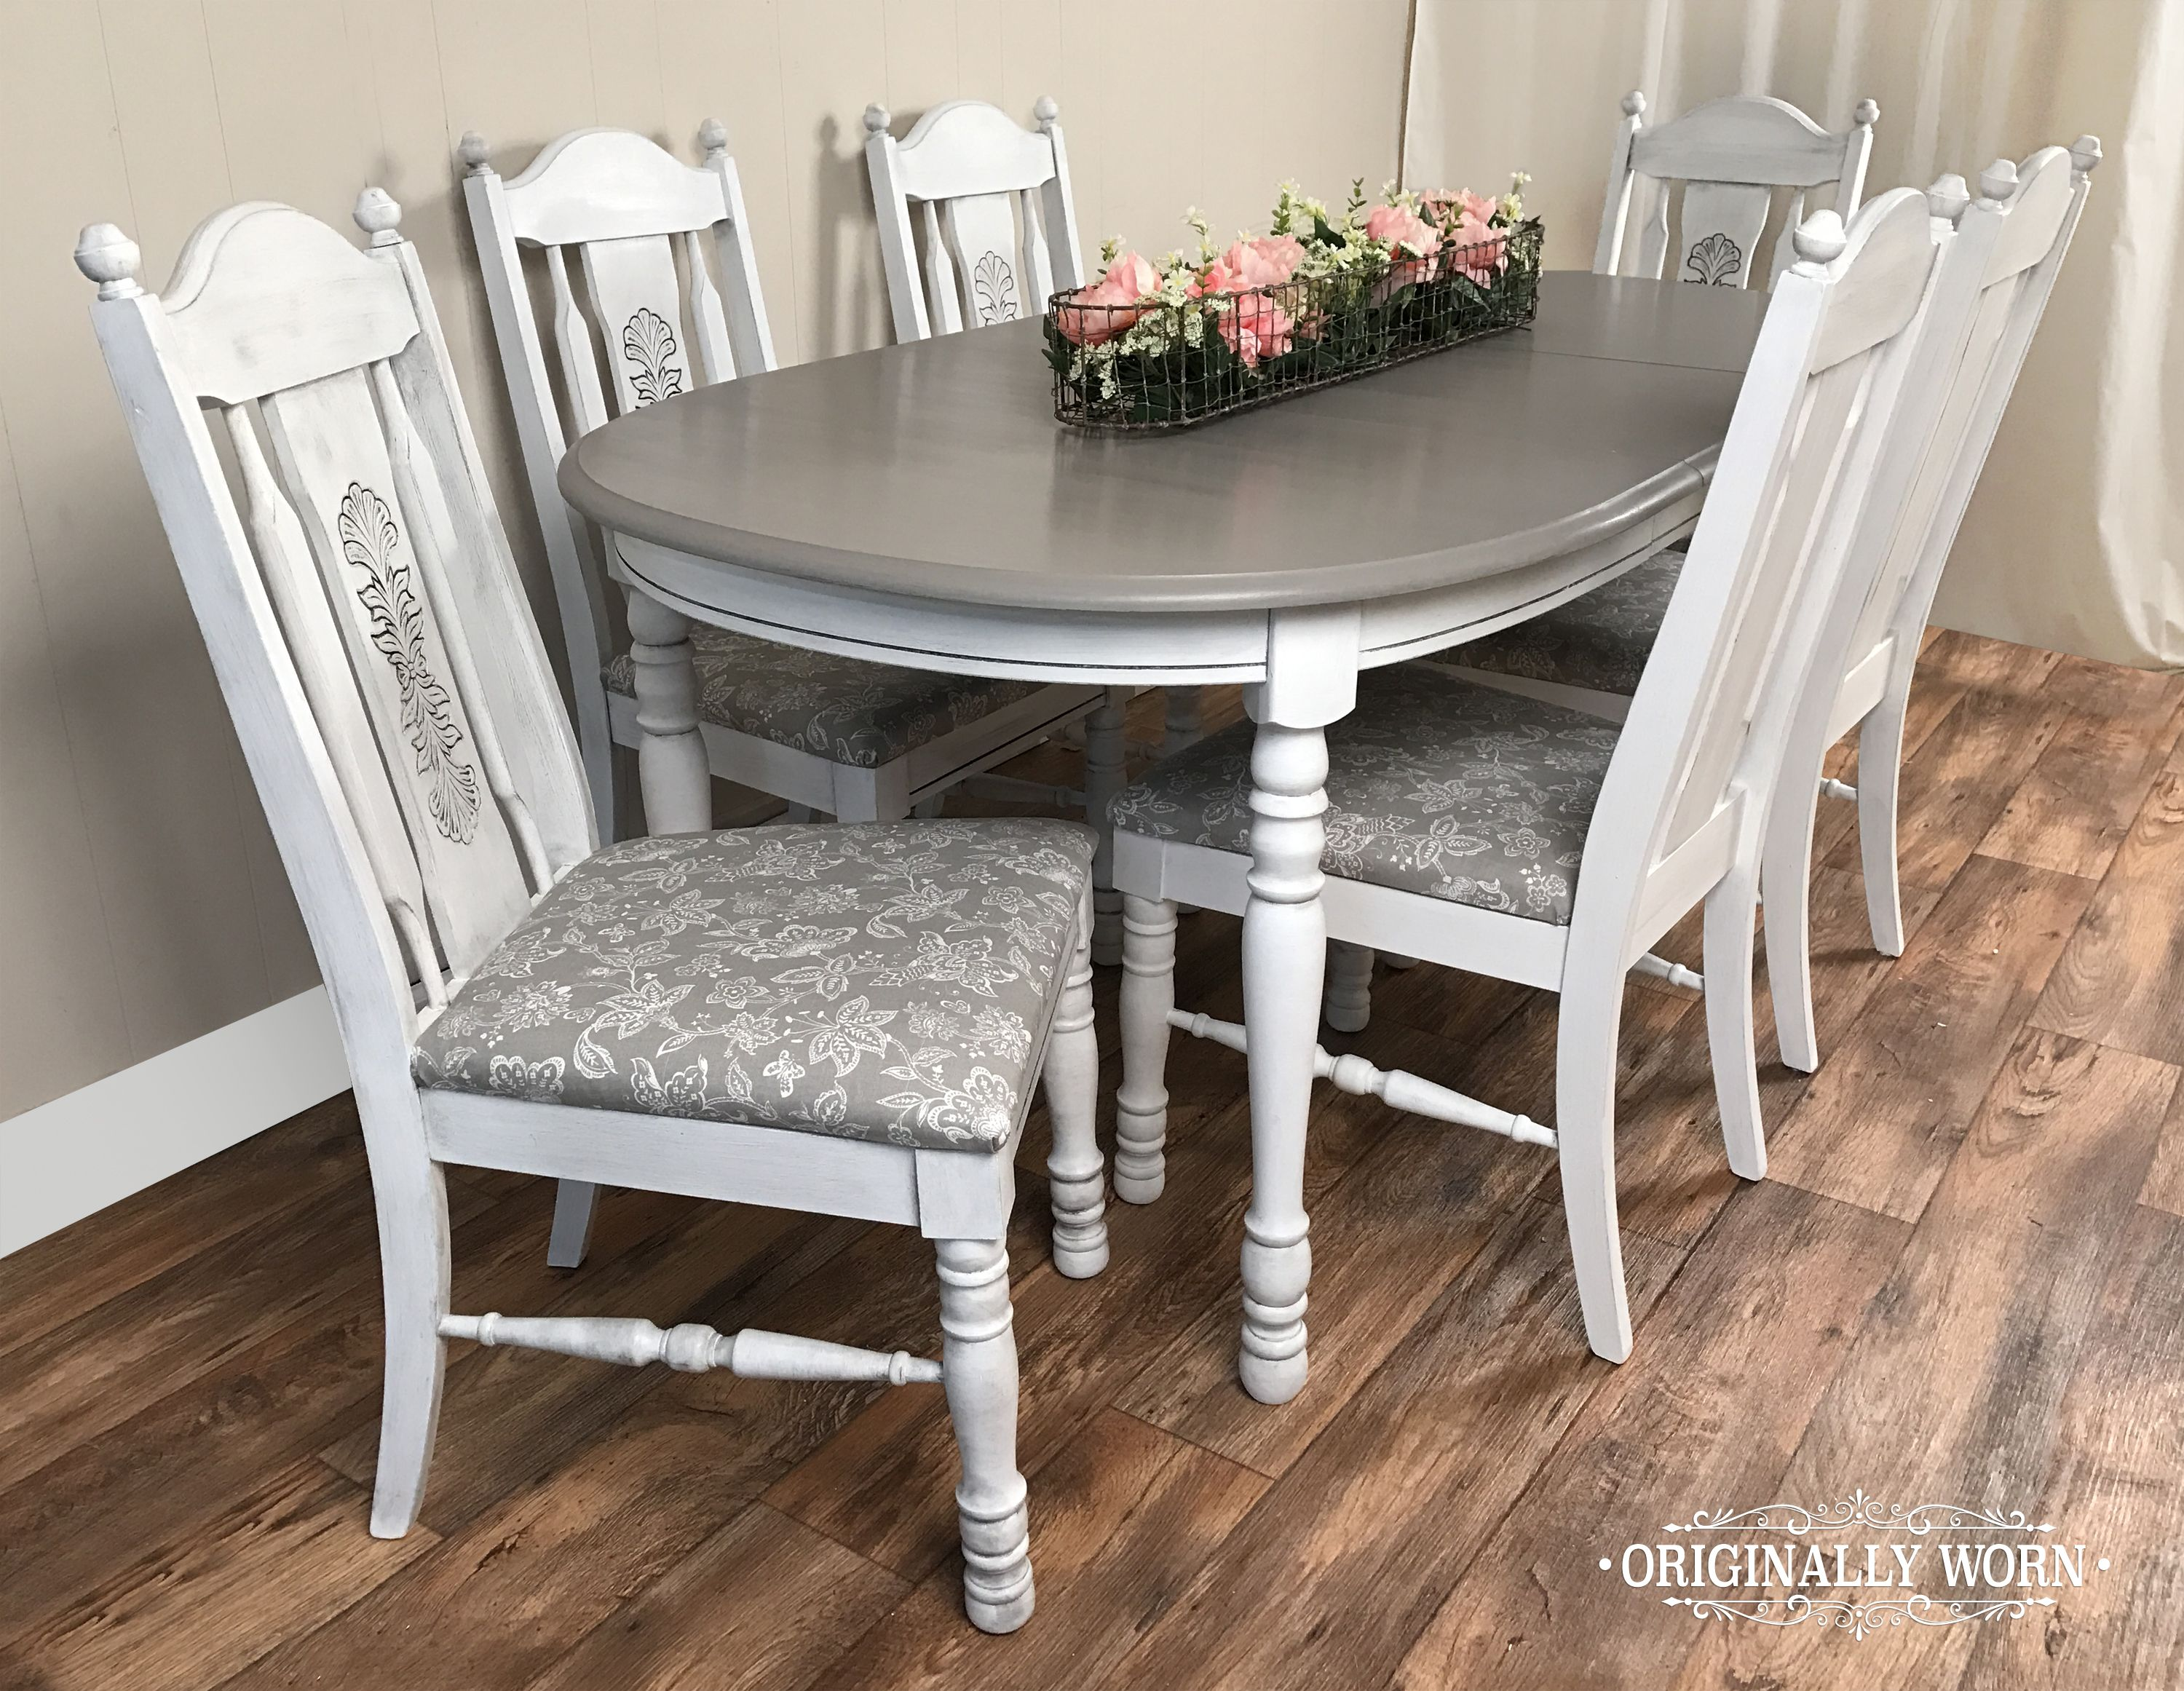 7 Piece Oval Dining Set In Annie Sloan Chalk Paint In Pure White And French Linen Painted Dining Room Table Chalk Paint Dining Room Table Painted Dining Table